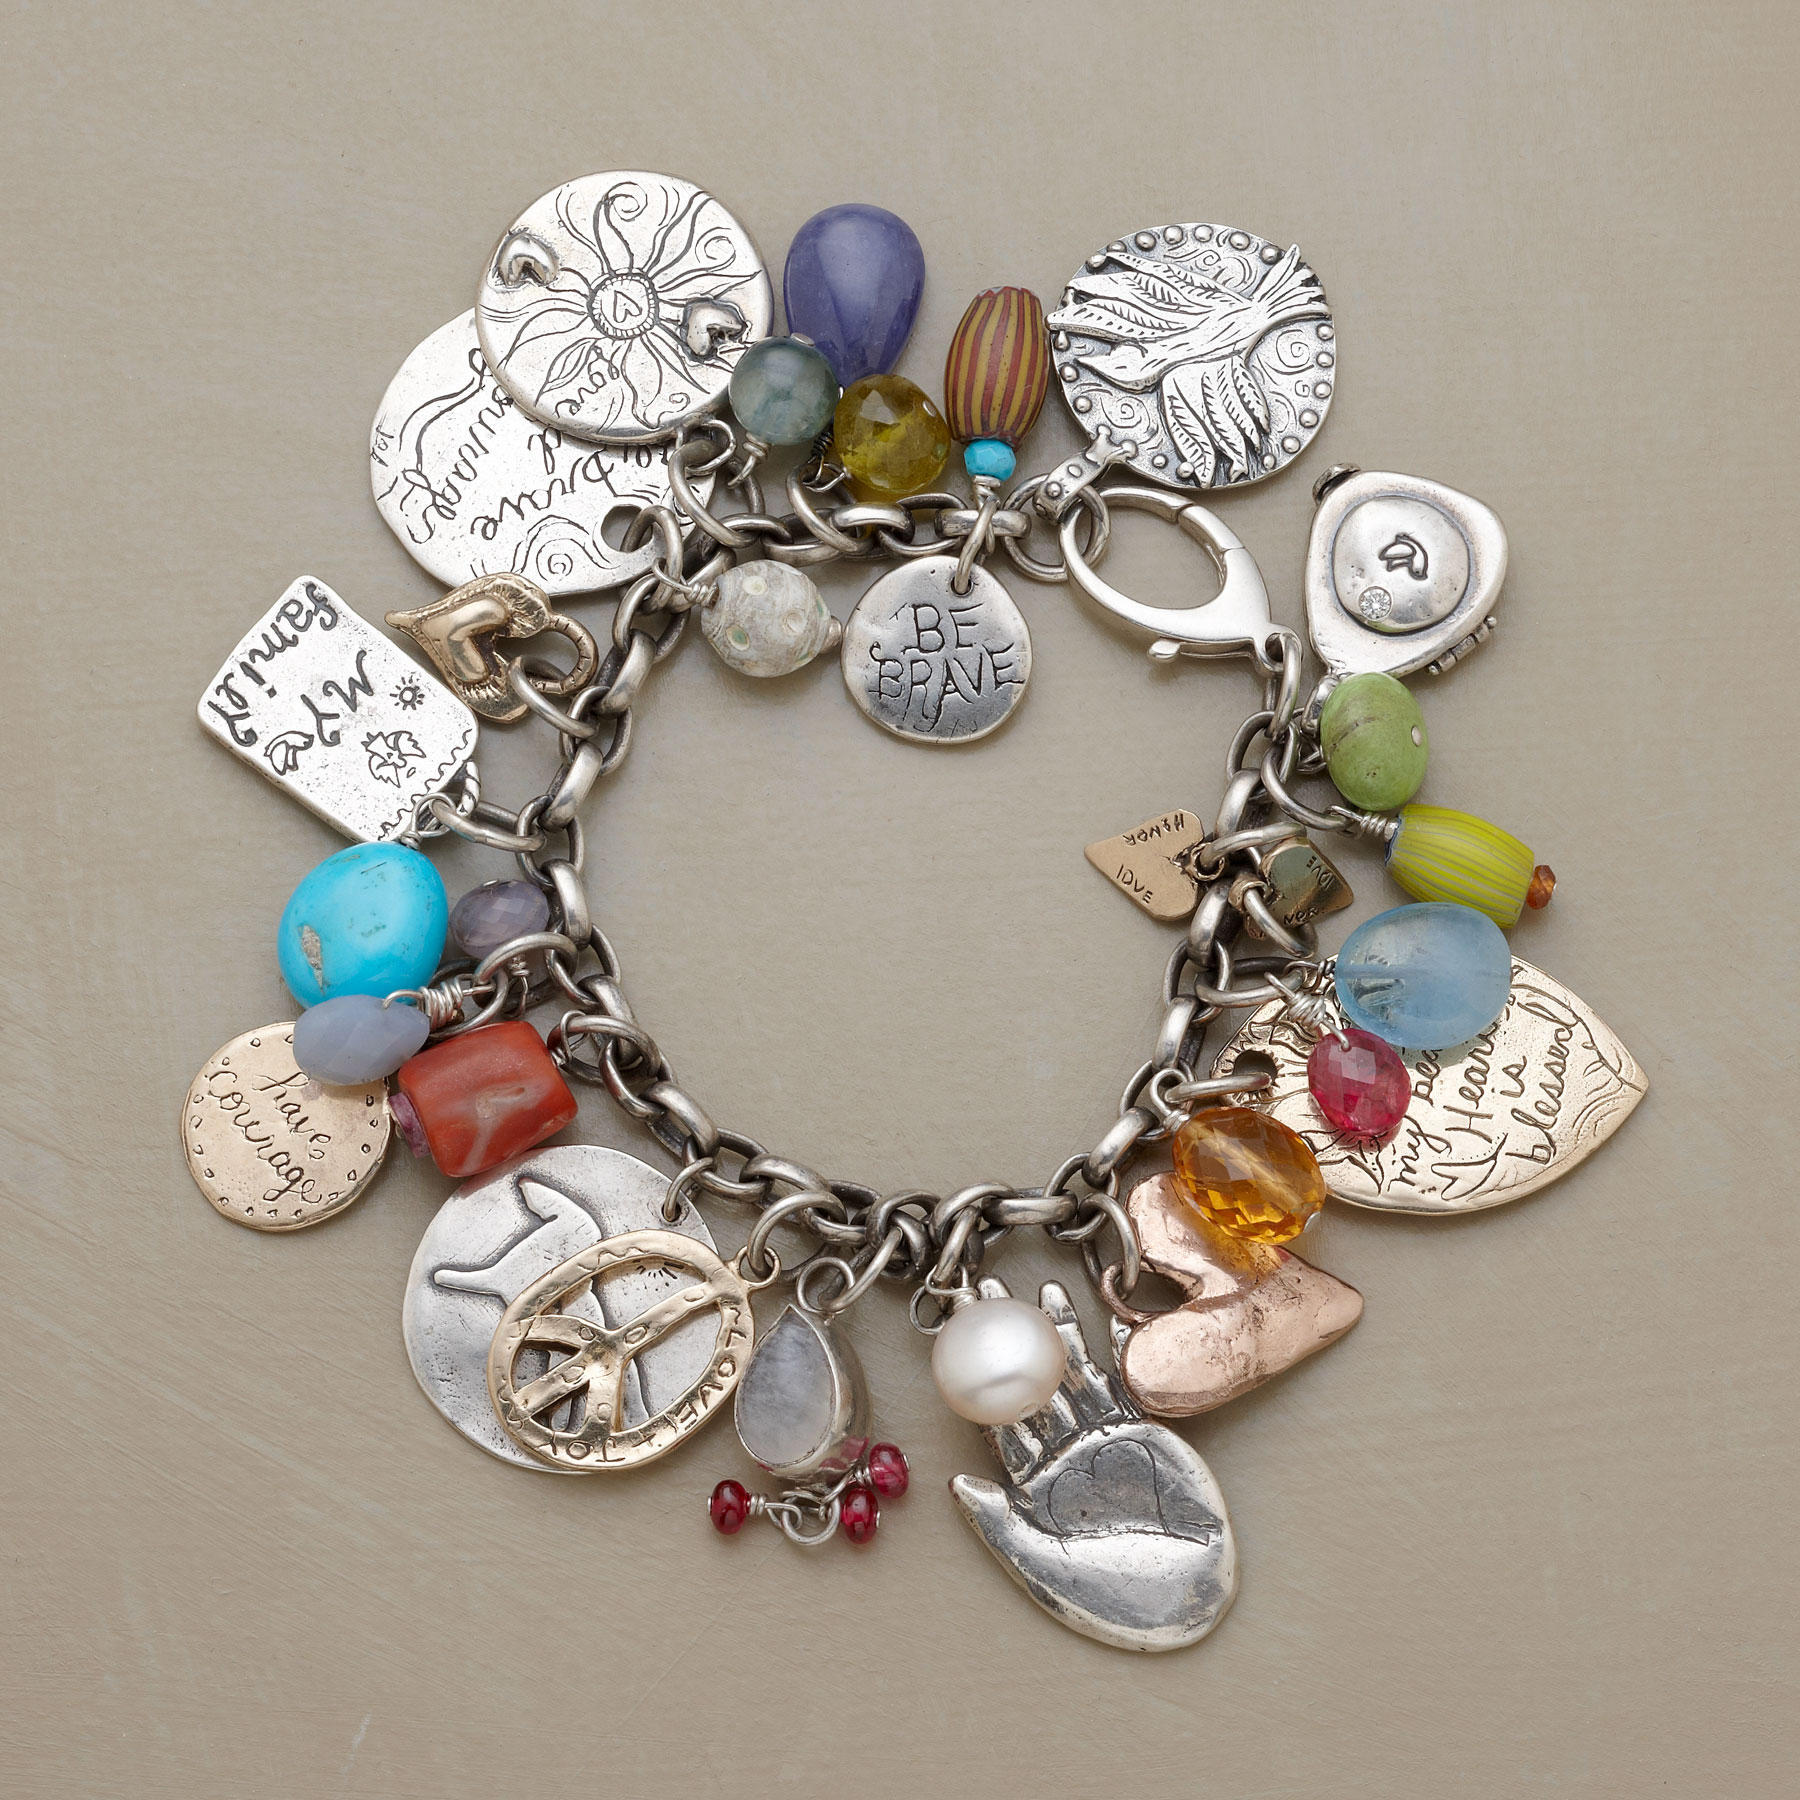 Collector's Item Bracelet